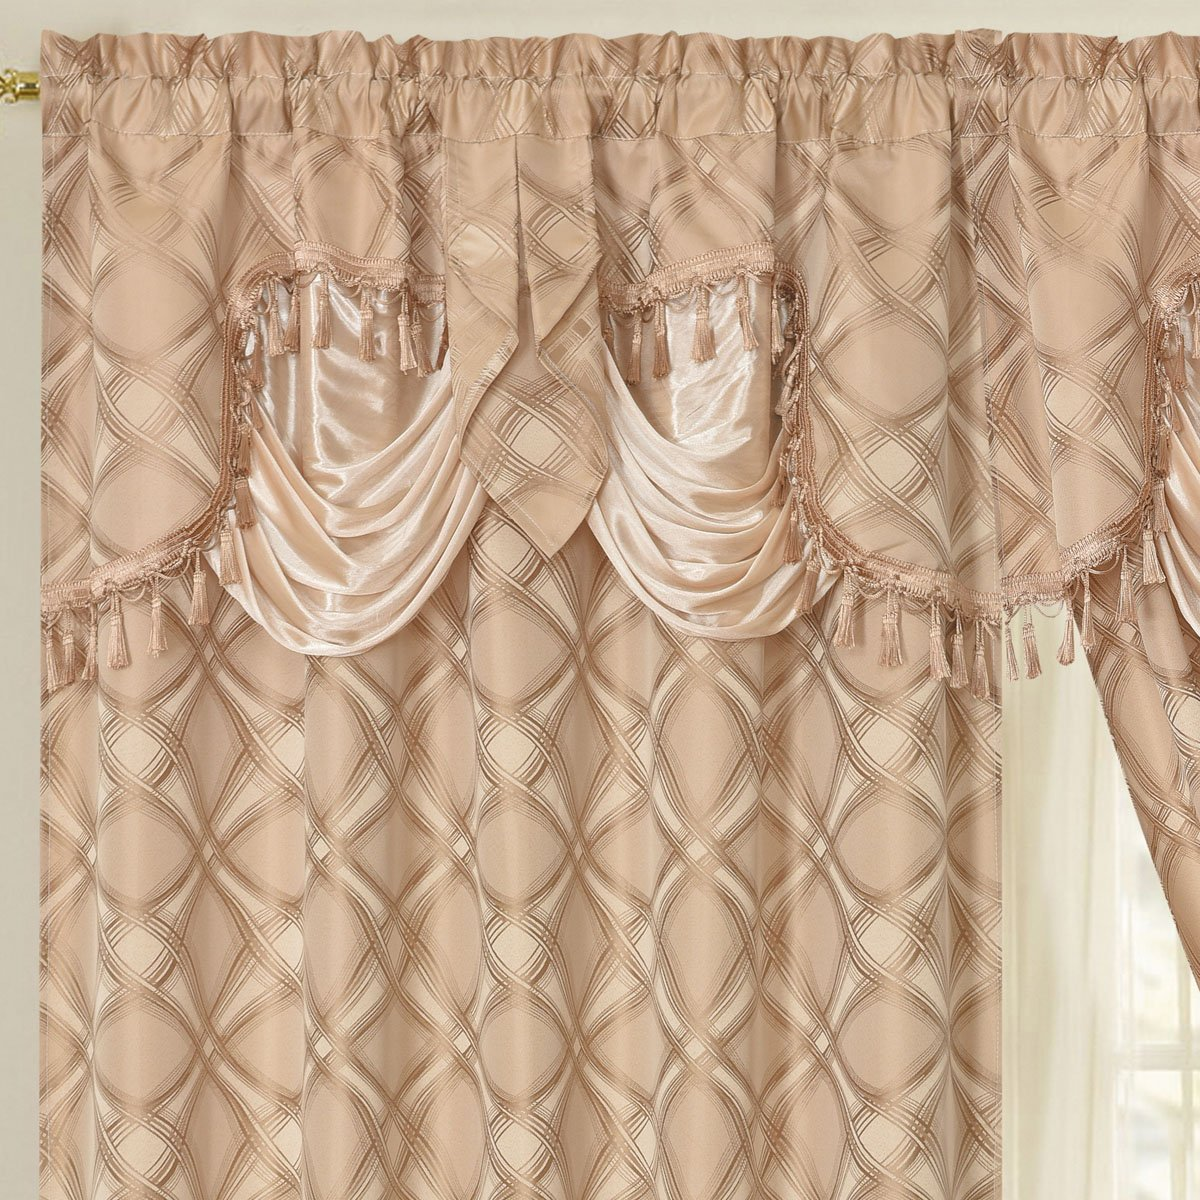 DANCE WITH WIND. Jacquard window curtain panel drape with attached fancy valance. 2pcs set. Each pc 54'' wide x 84'' drop with 18'' valance. (COFFEE)